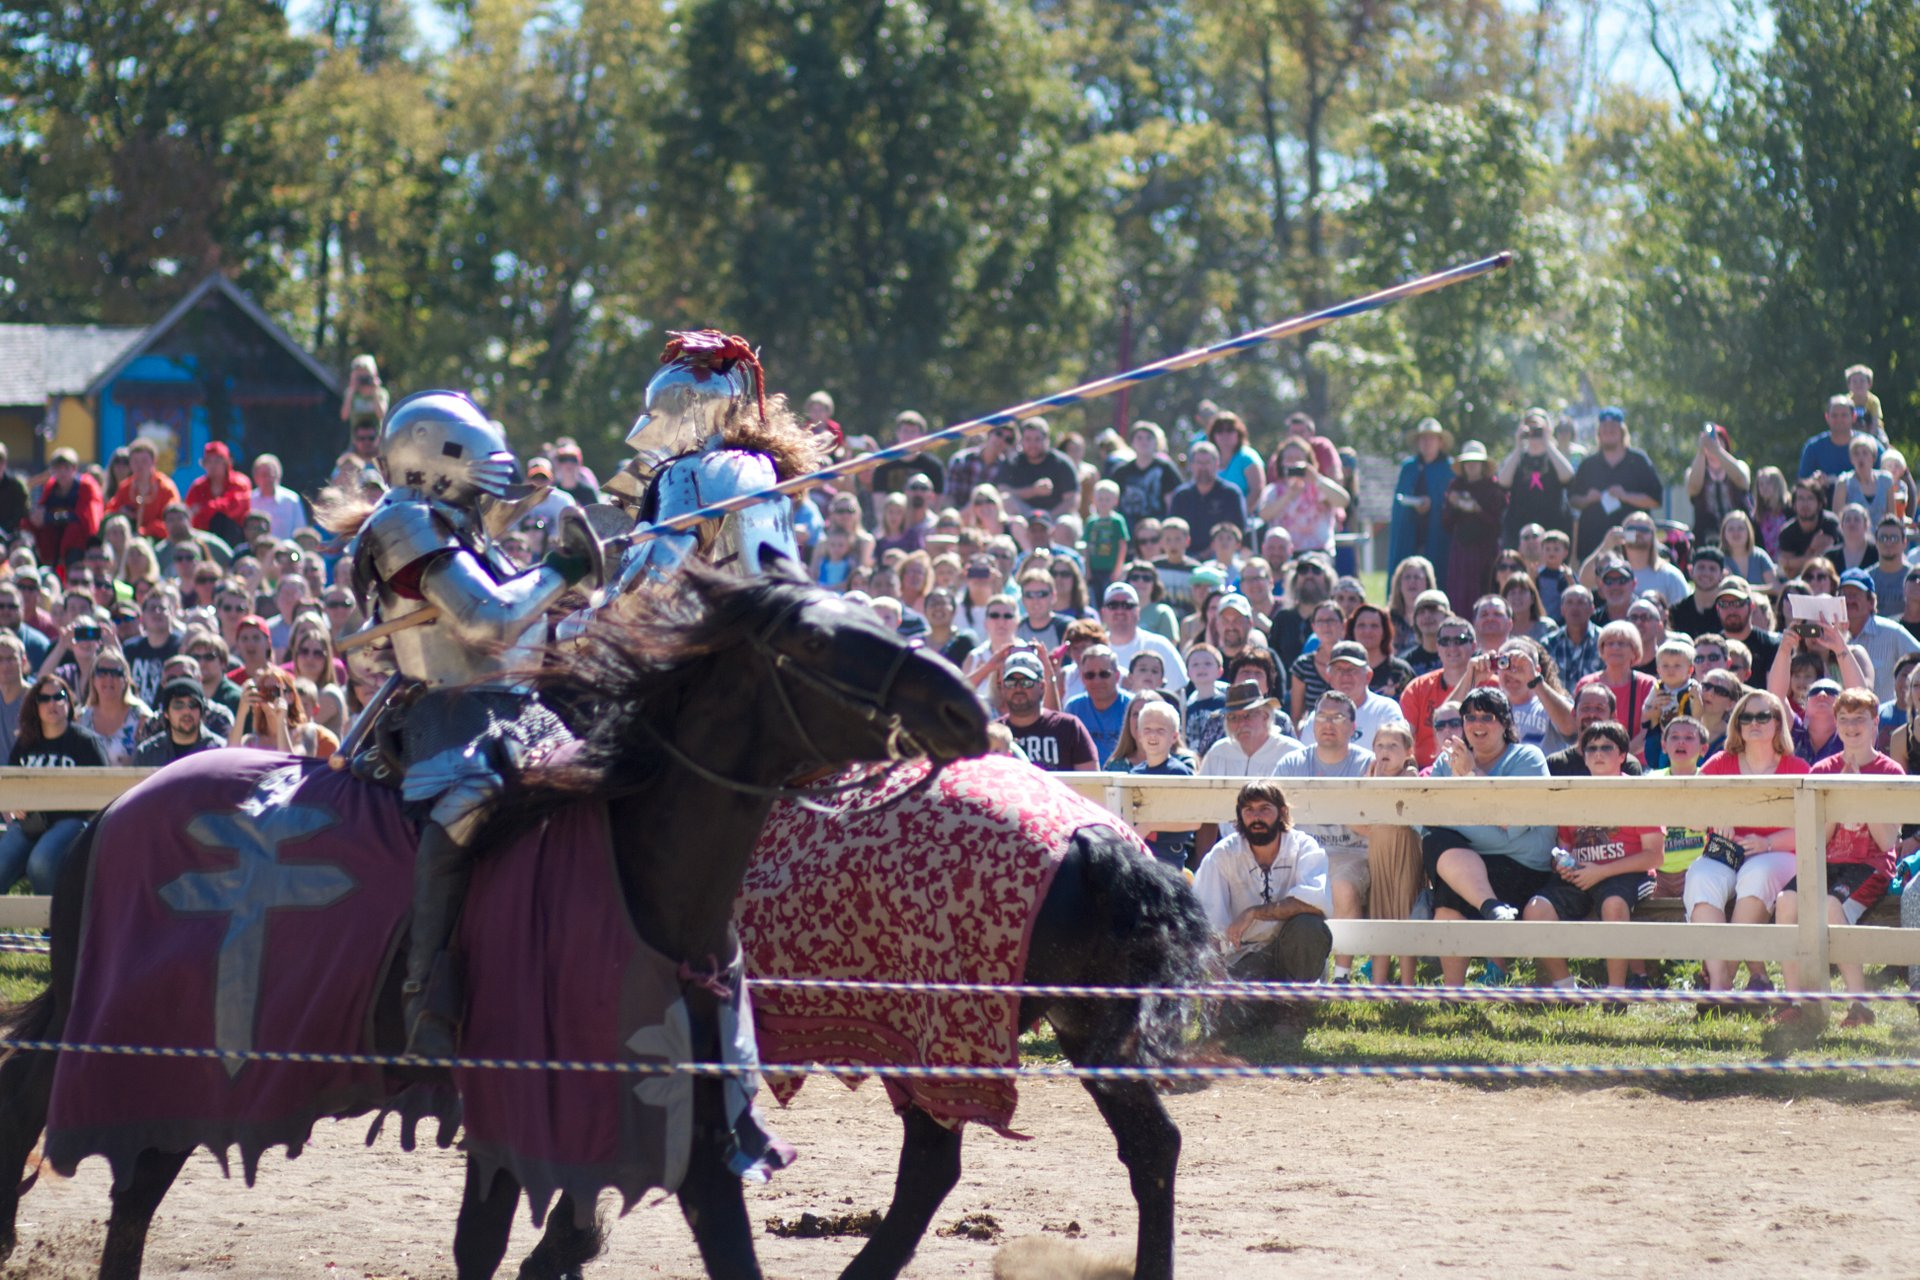 Best time for Ohio Renaissance Festival in Ohio 2020